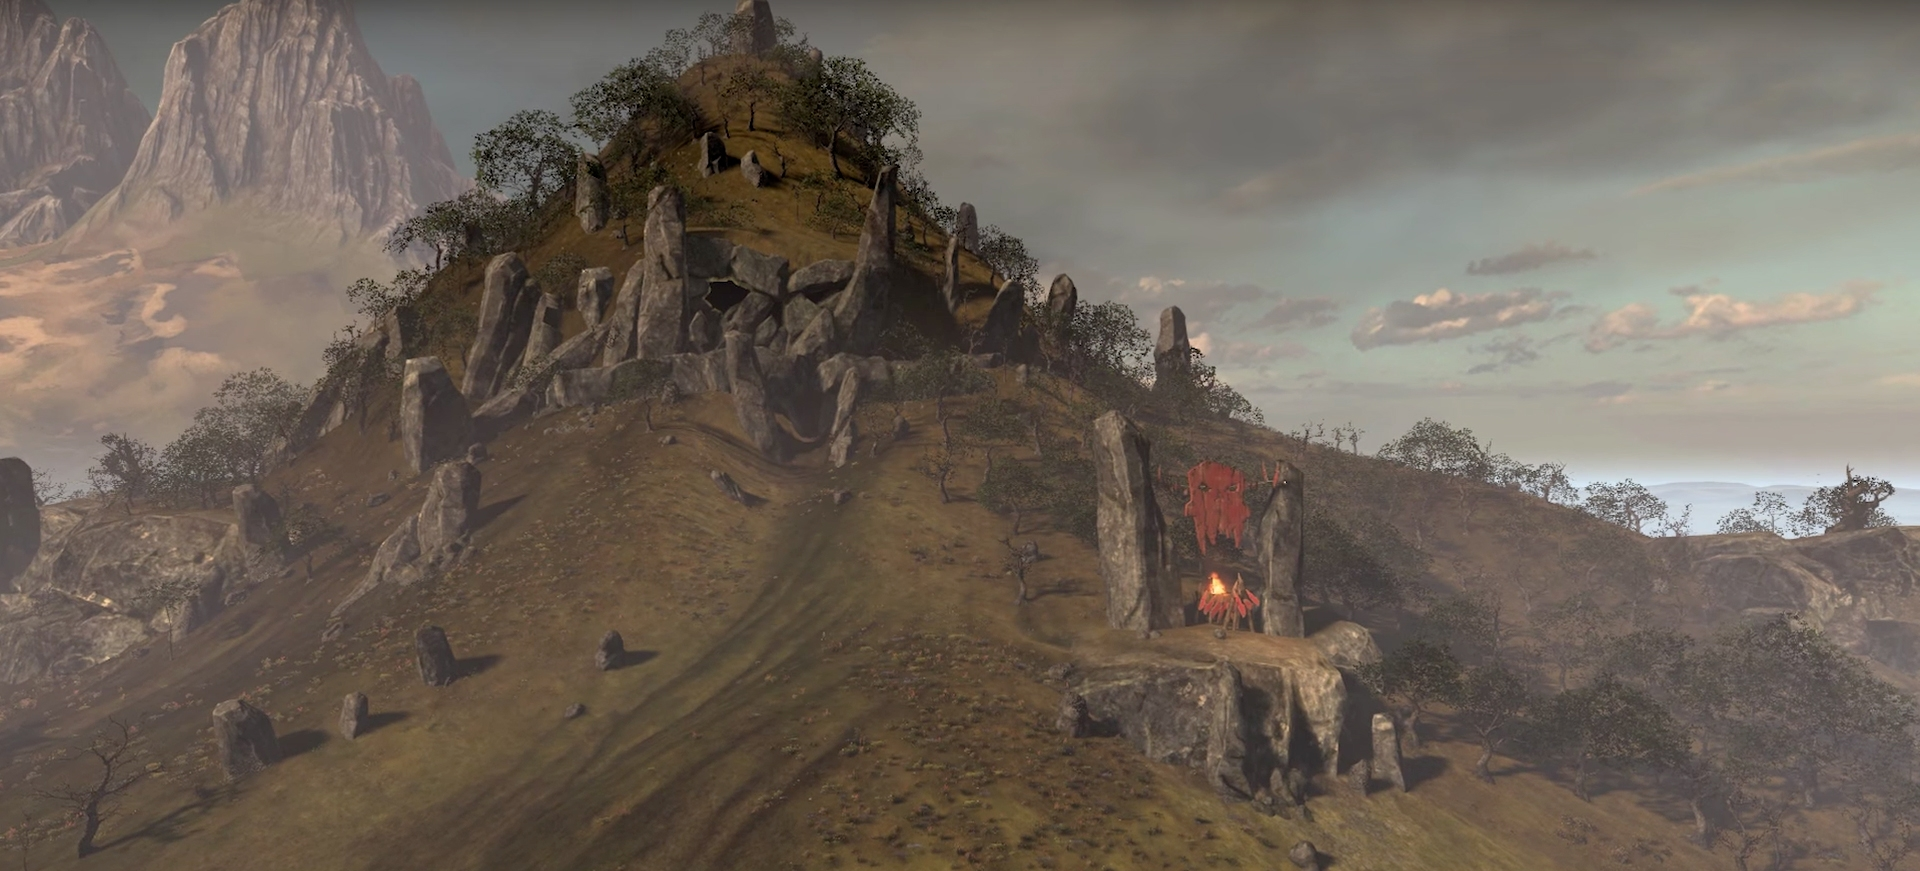 Areas of the old world battle maps total war forums burialmoundg 8714k gumiabroncs Choice Image